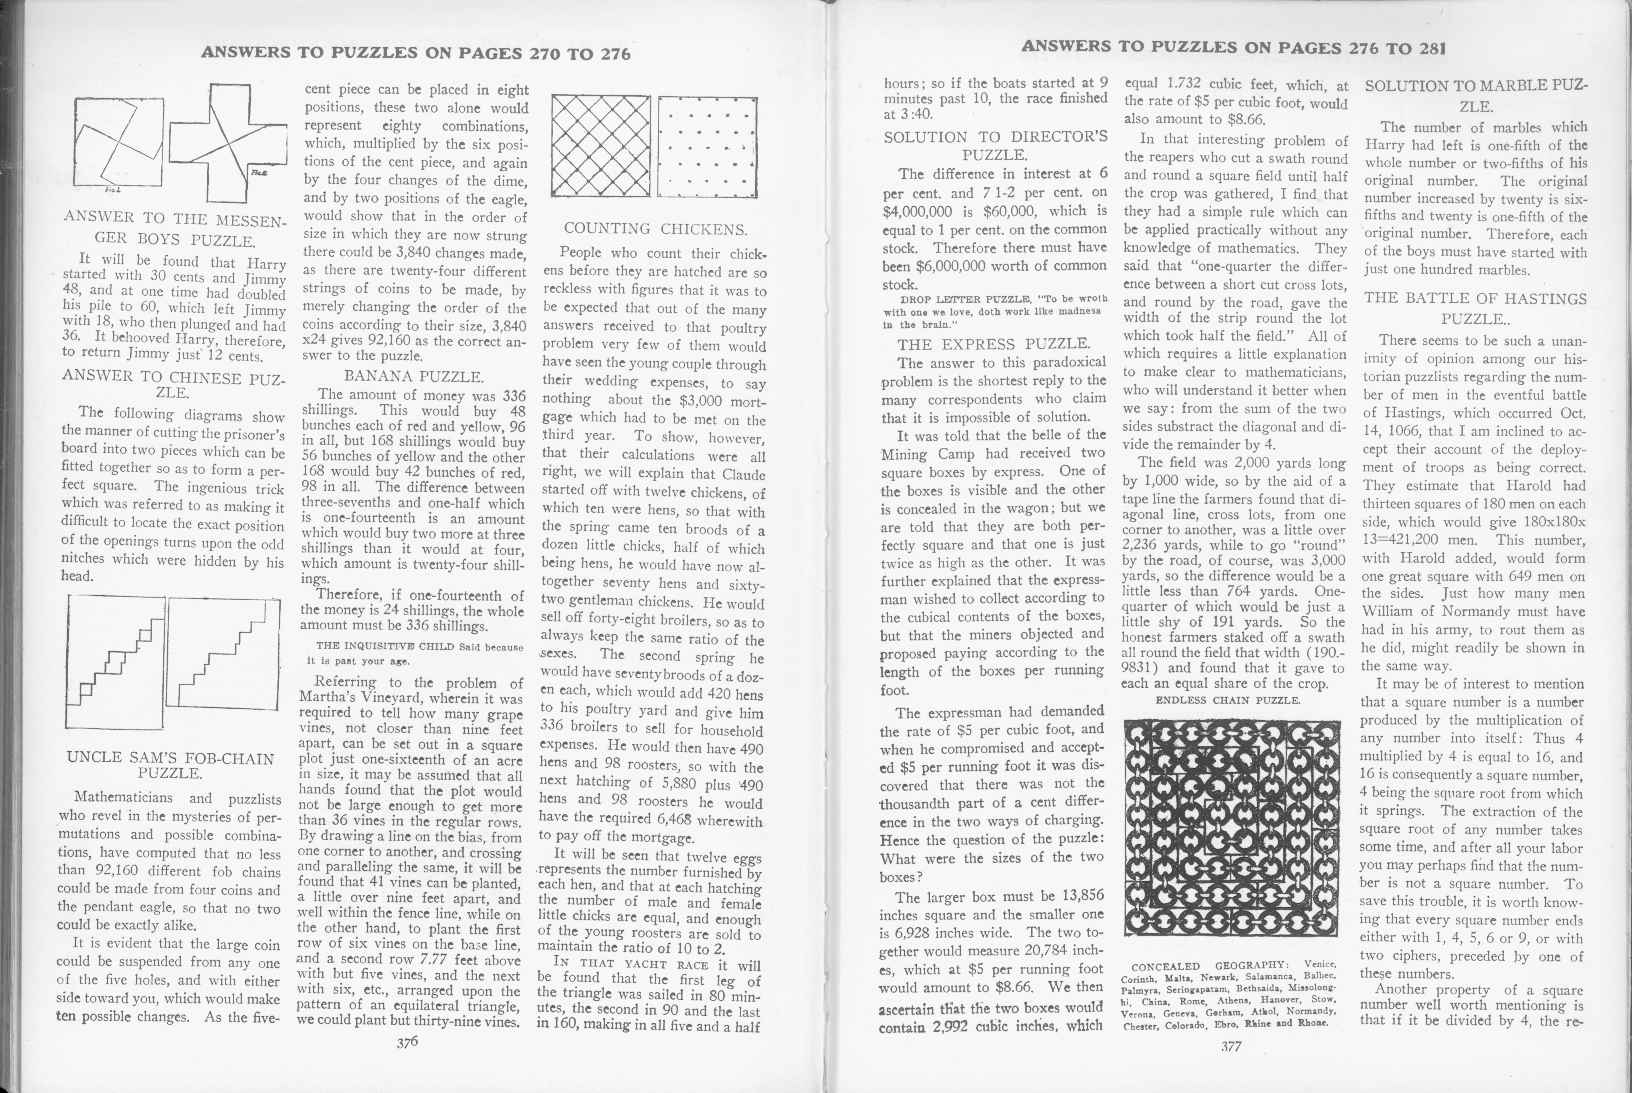 Sam Loyd - Cyclopedia of Puzzles - page 376-377